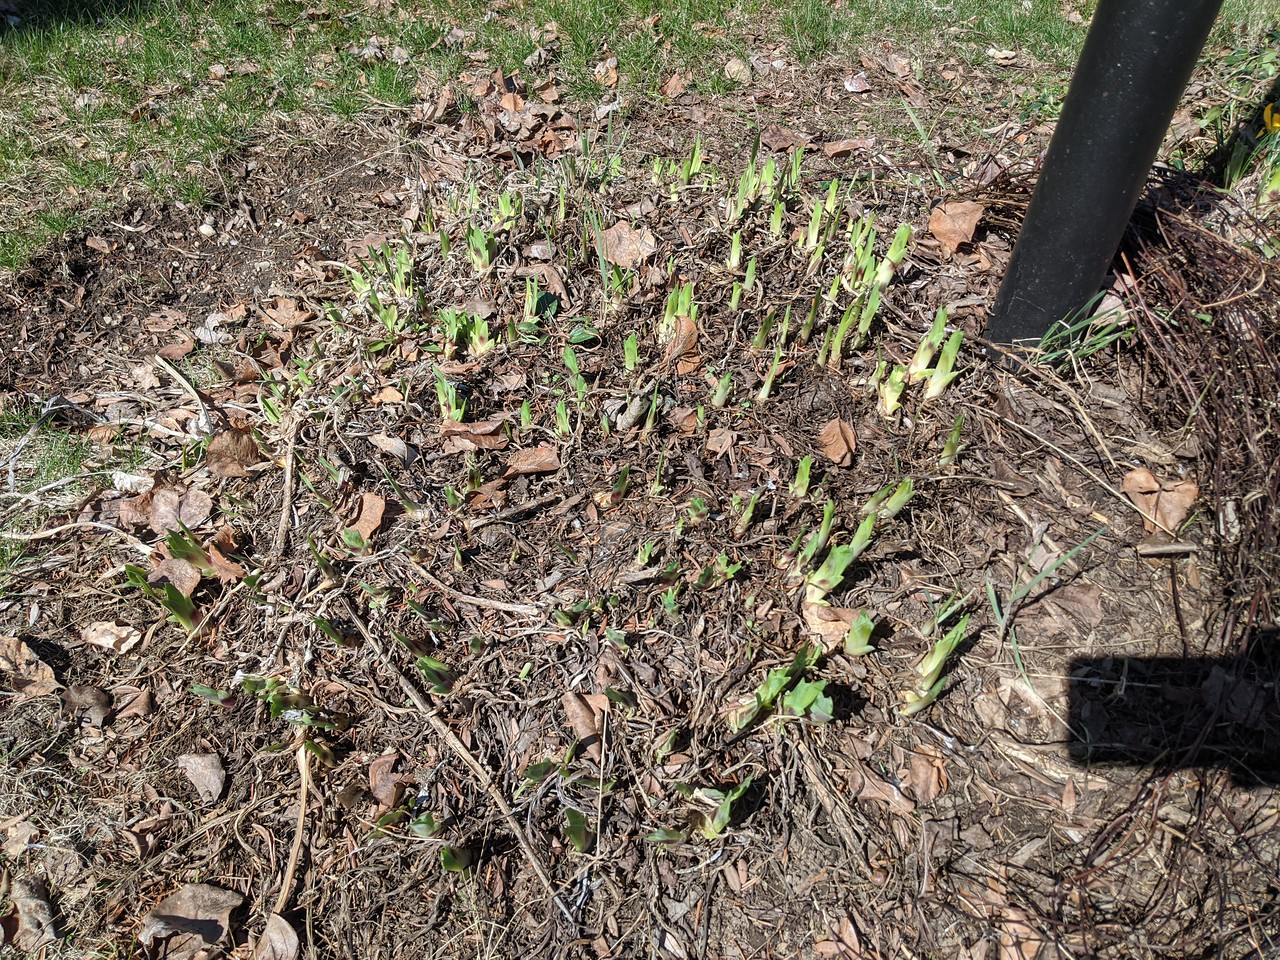 Iris leaves peeking out, March 25